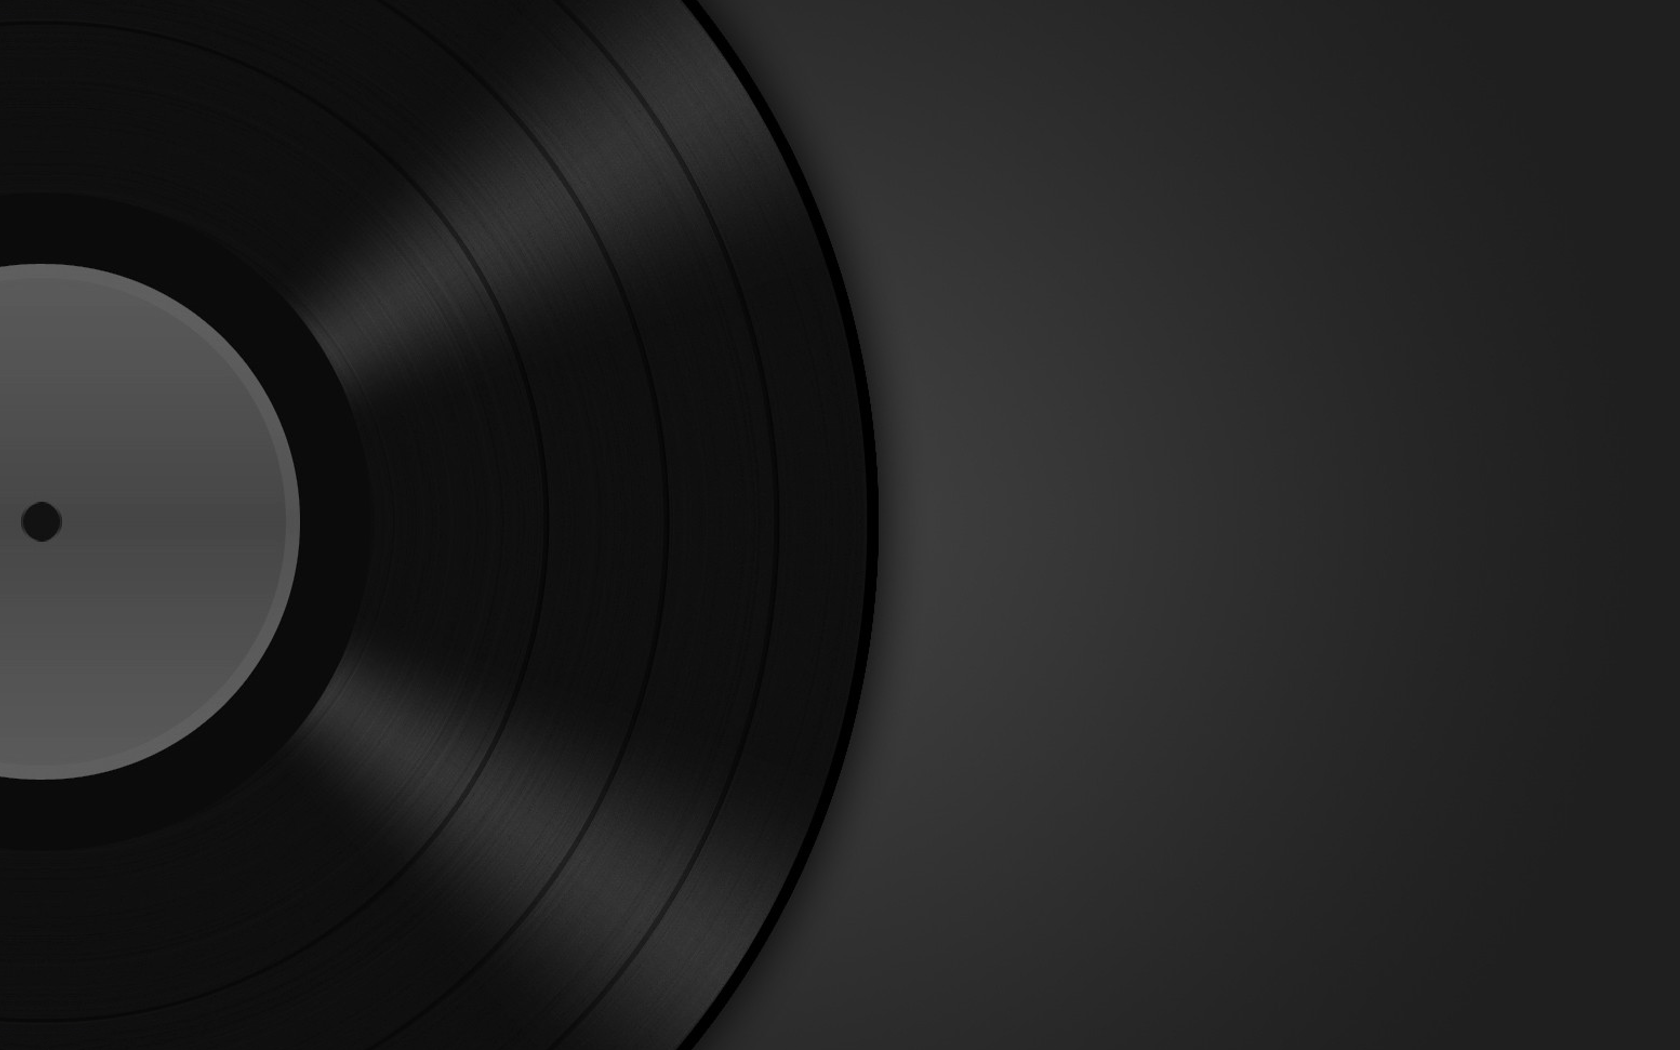 1680x1050 Music Record wallpaper